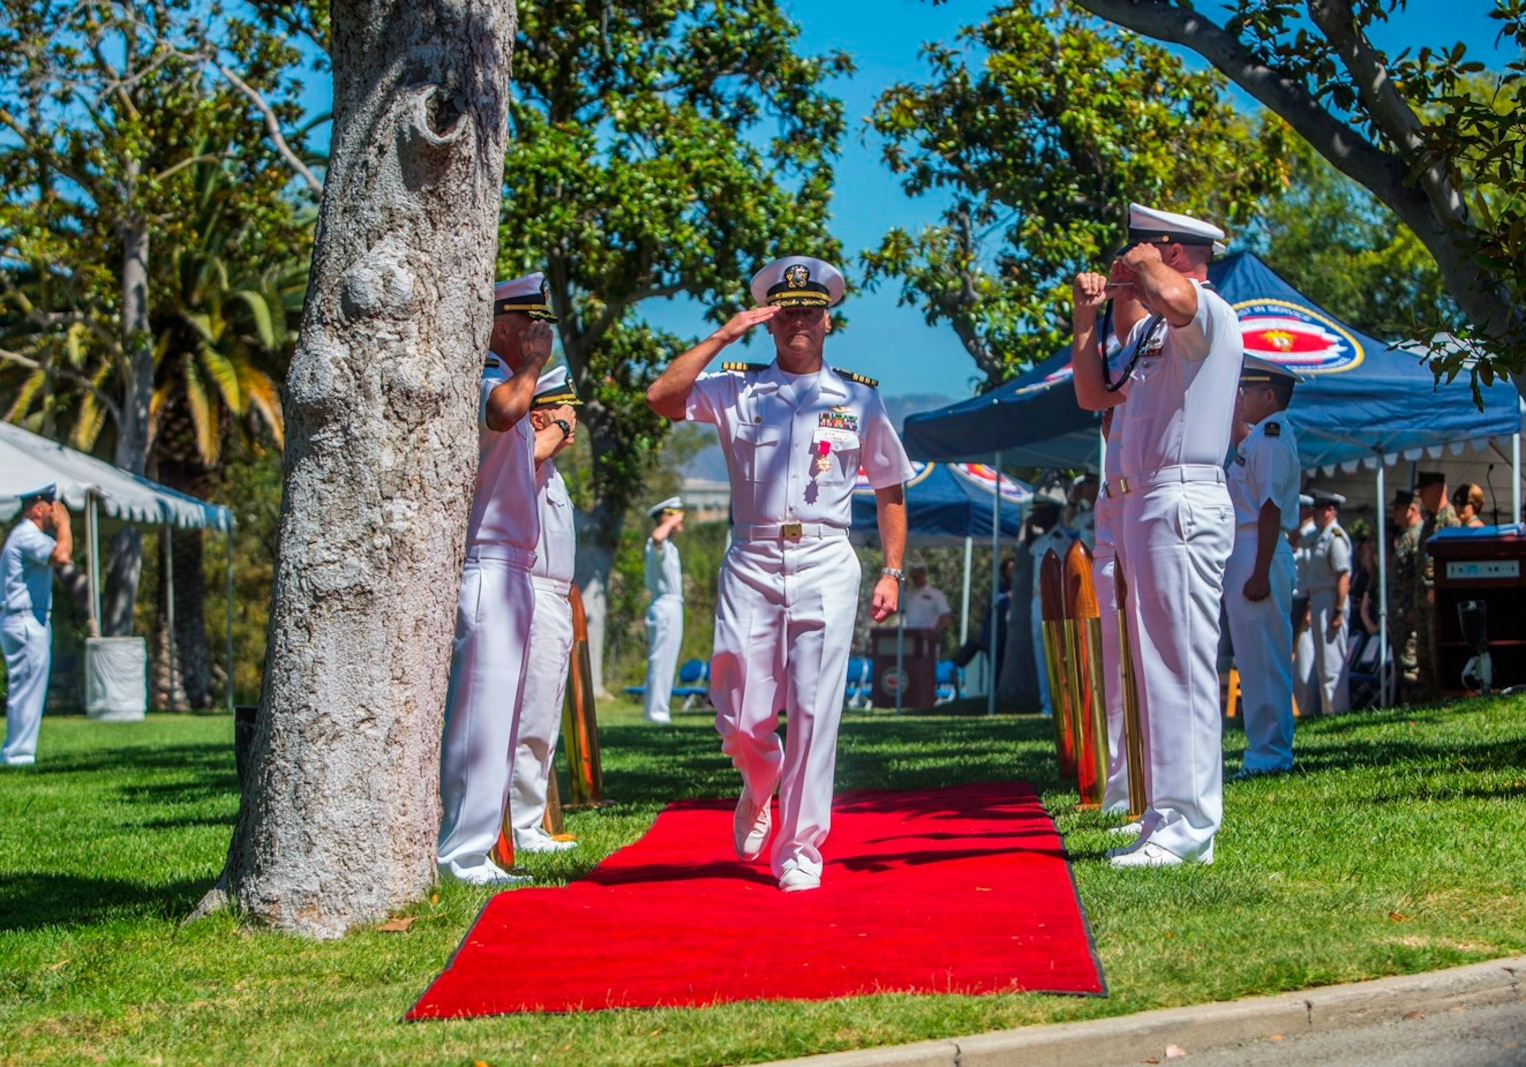 """U.S. Navy Capt. Peter A. Ruocco returns a salute and departs from the 1st Dental Battalion change of charge ceremony at Camp Pendleton, Calif., Aug. 16, 2017. During Ruocco's departure, the sideboys render their honors as the boatswain """"pipes"""" Ruocco ashore. The Boatswains pipe is traditionally used to pass commands to the crew as the sound of the crew or bad weather would drown out a Sailors voice. (U.S. Marine Corps photo by Lance Cpl. Joseph Sorci)"""